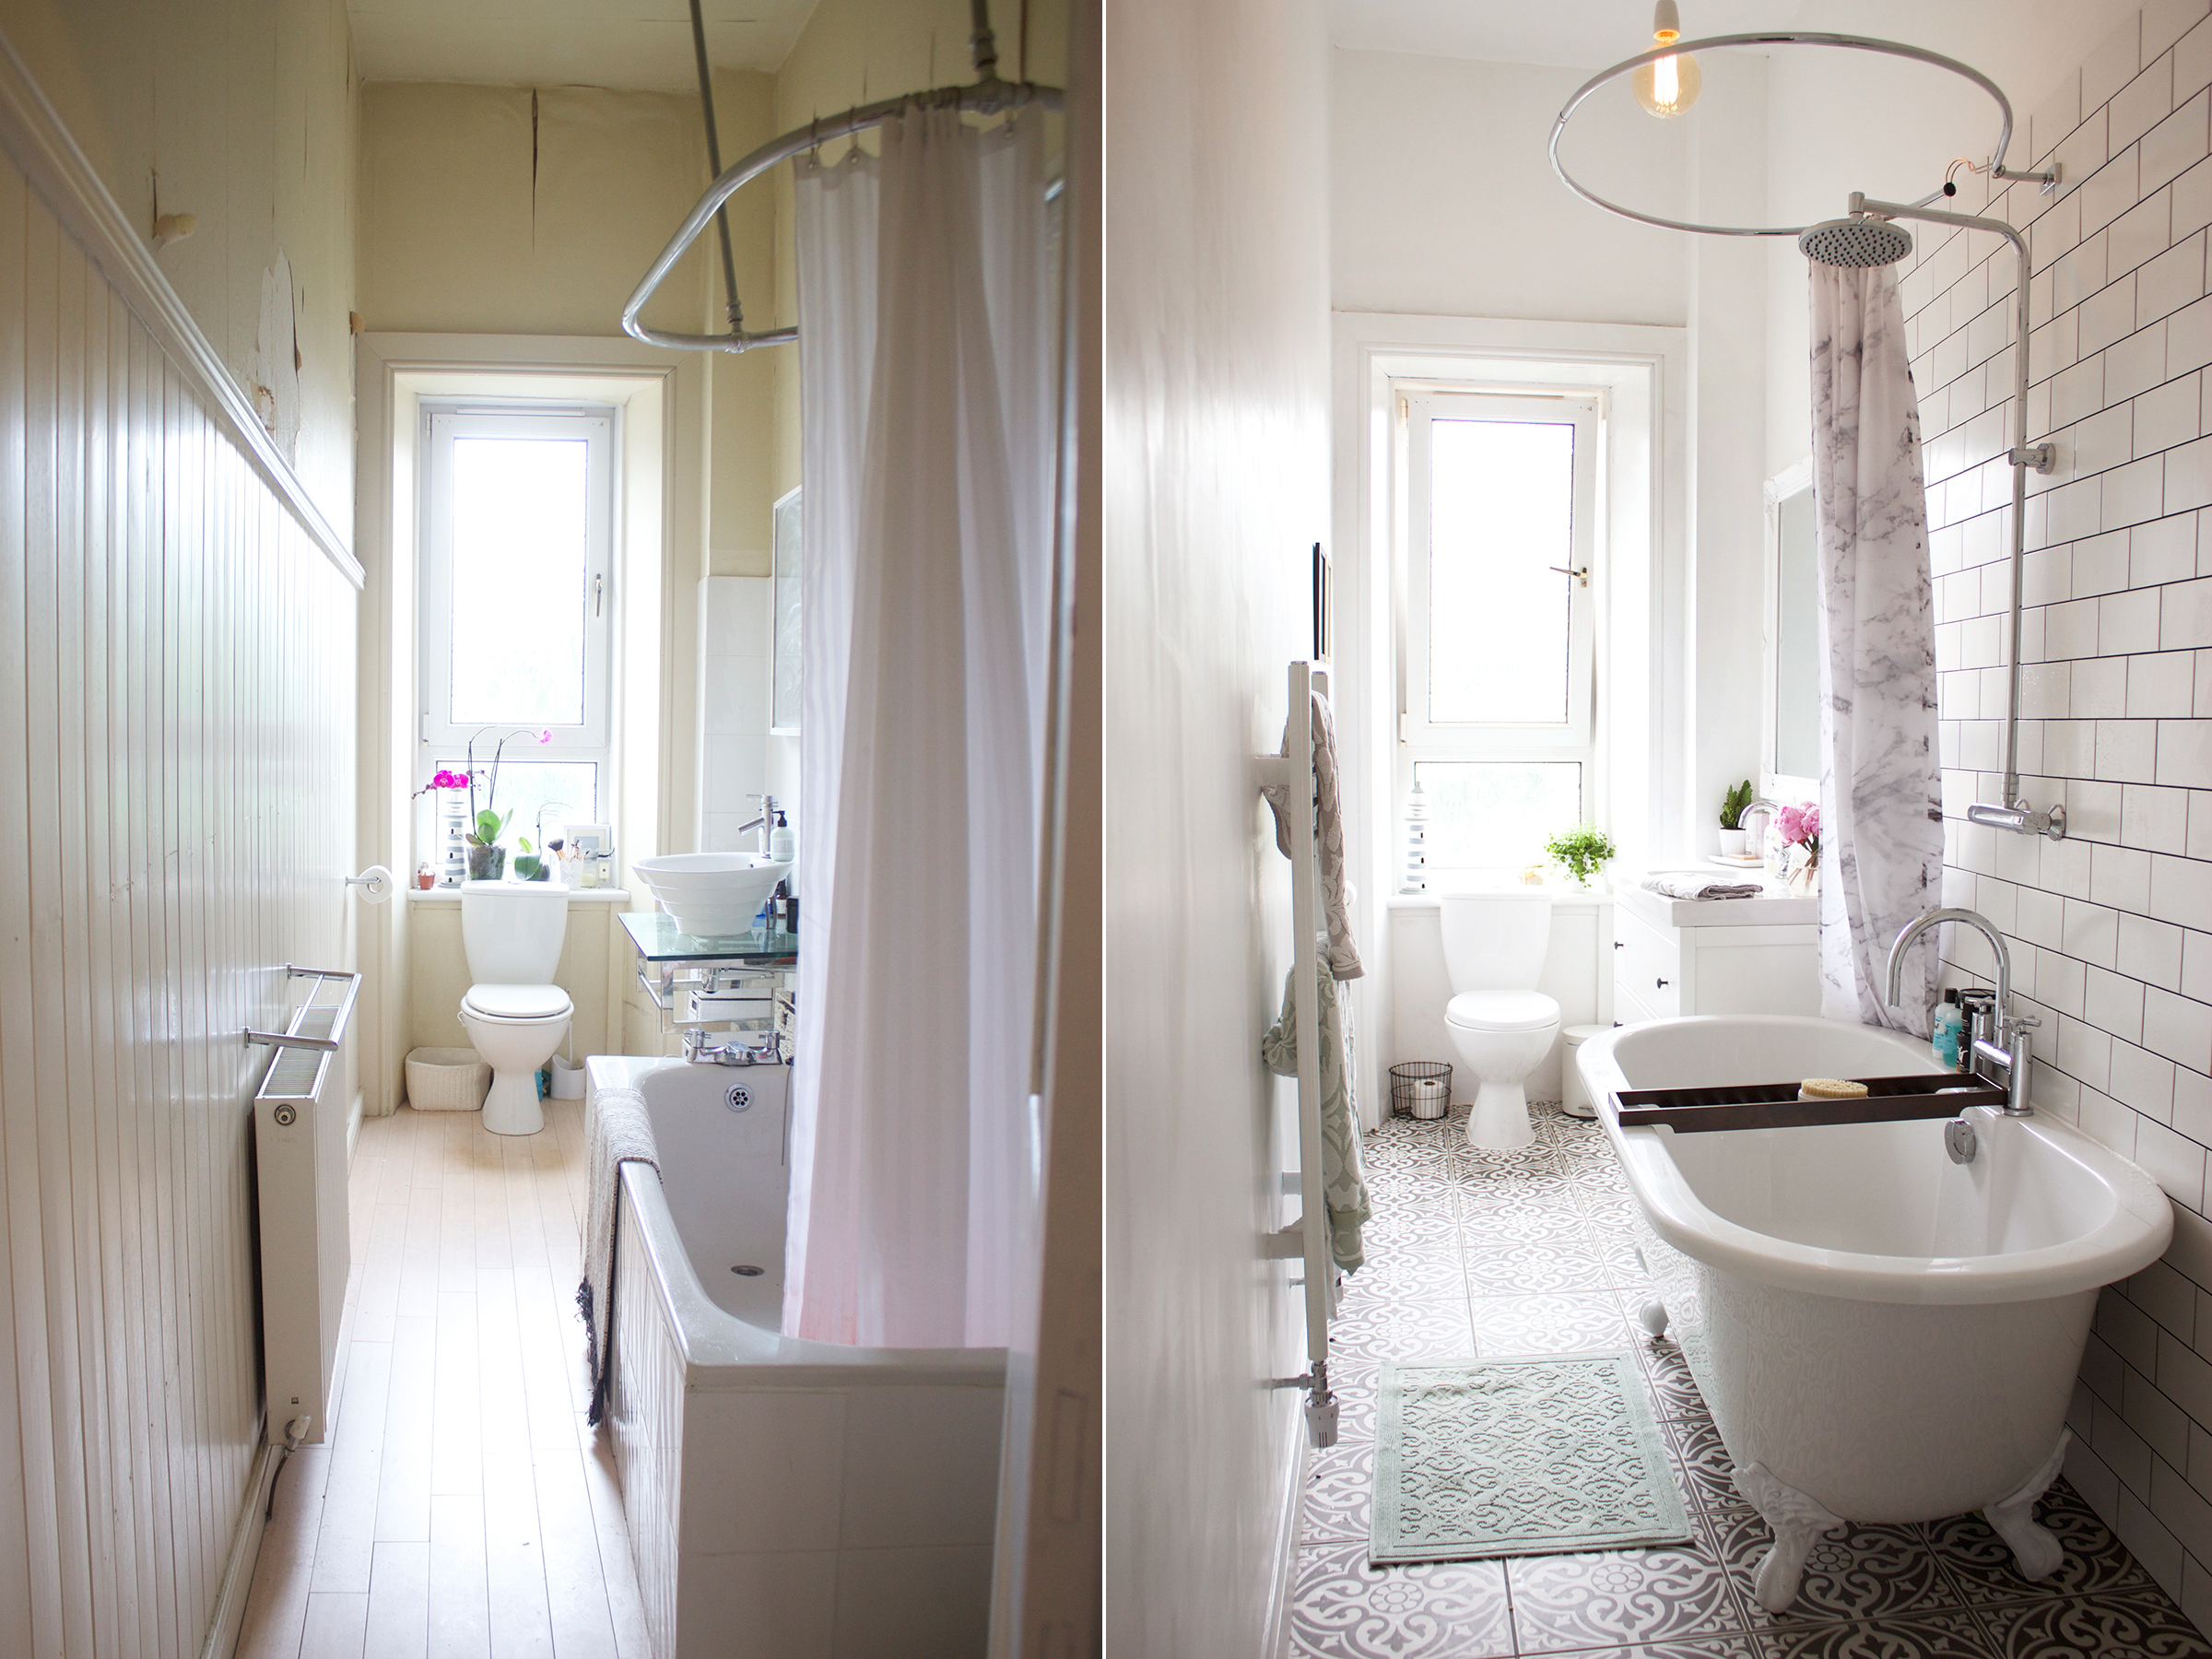 A bathroom makeover before after kate la vie for Before and after small bathroom makeovers